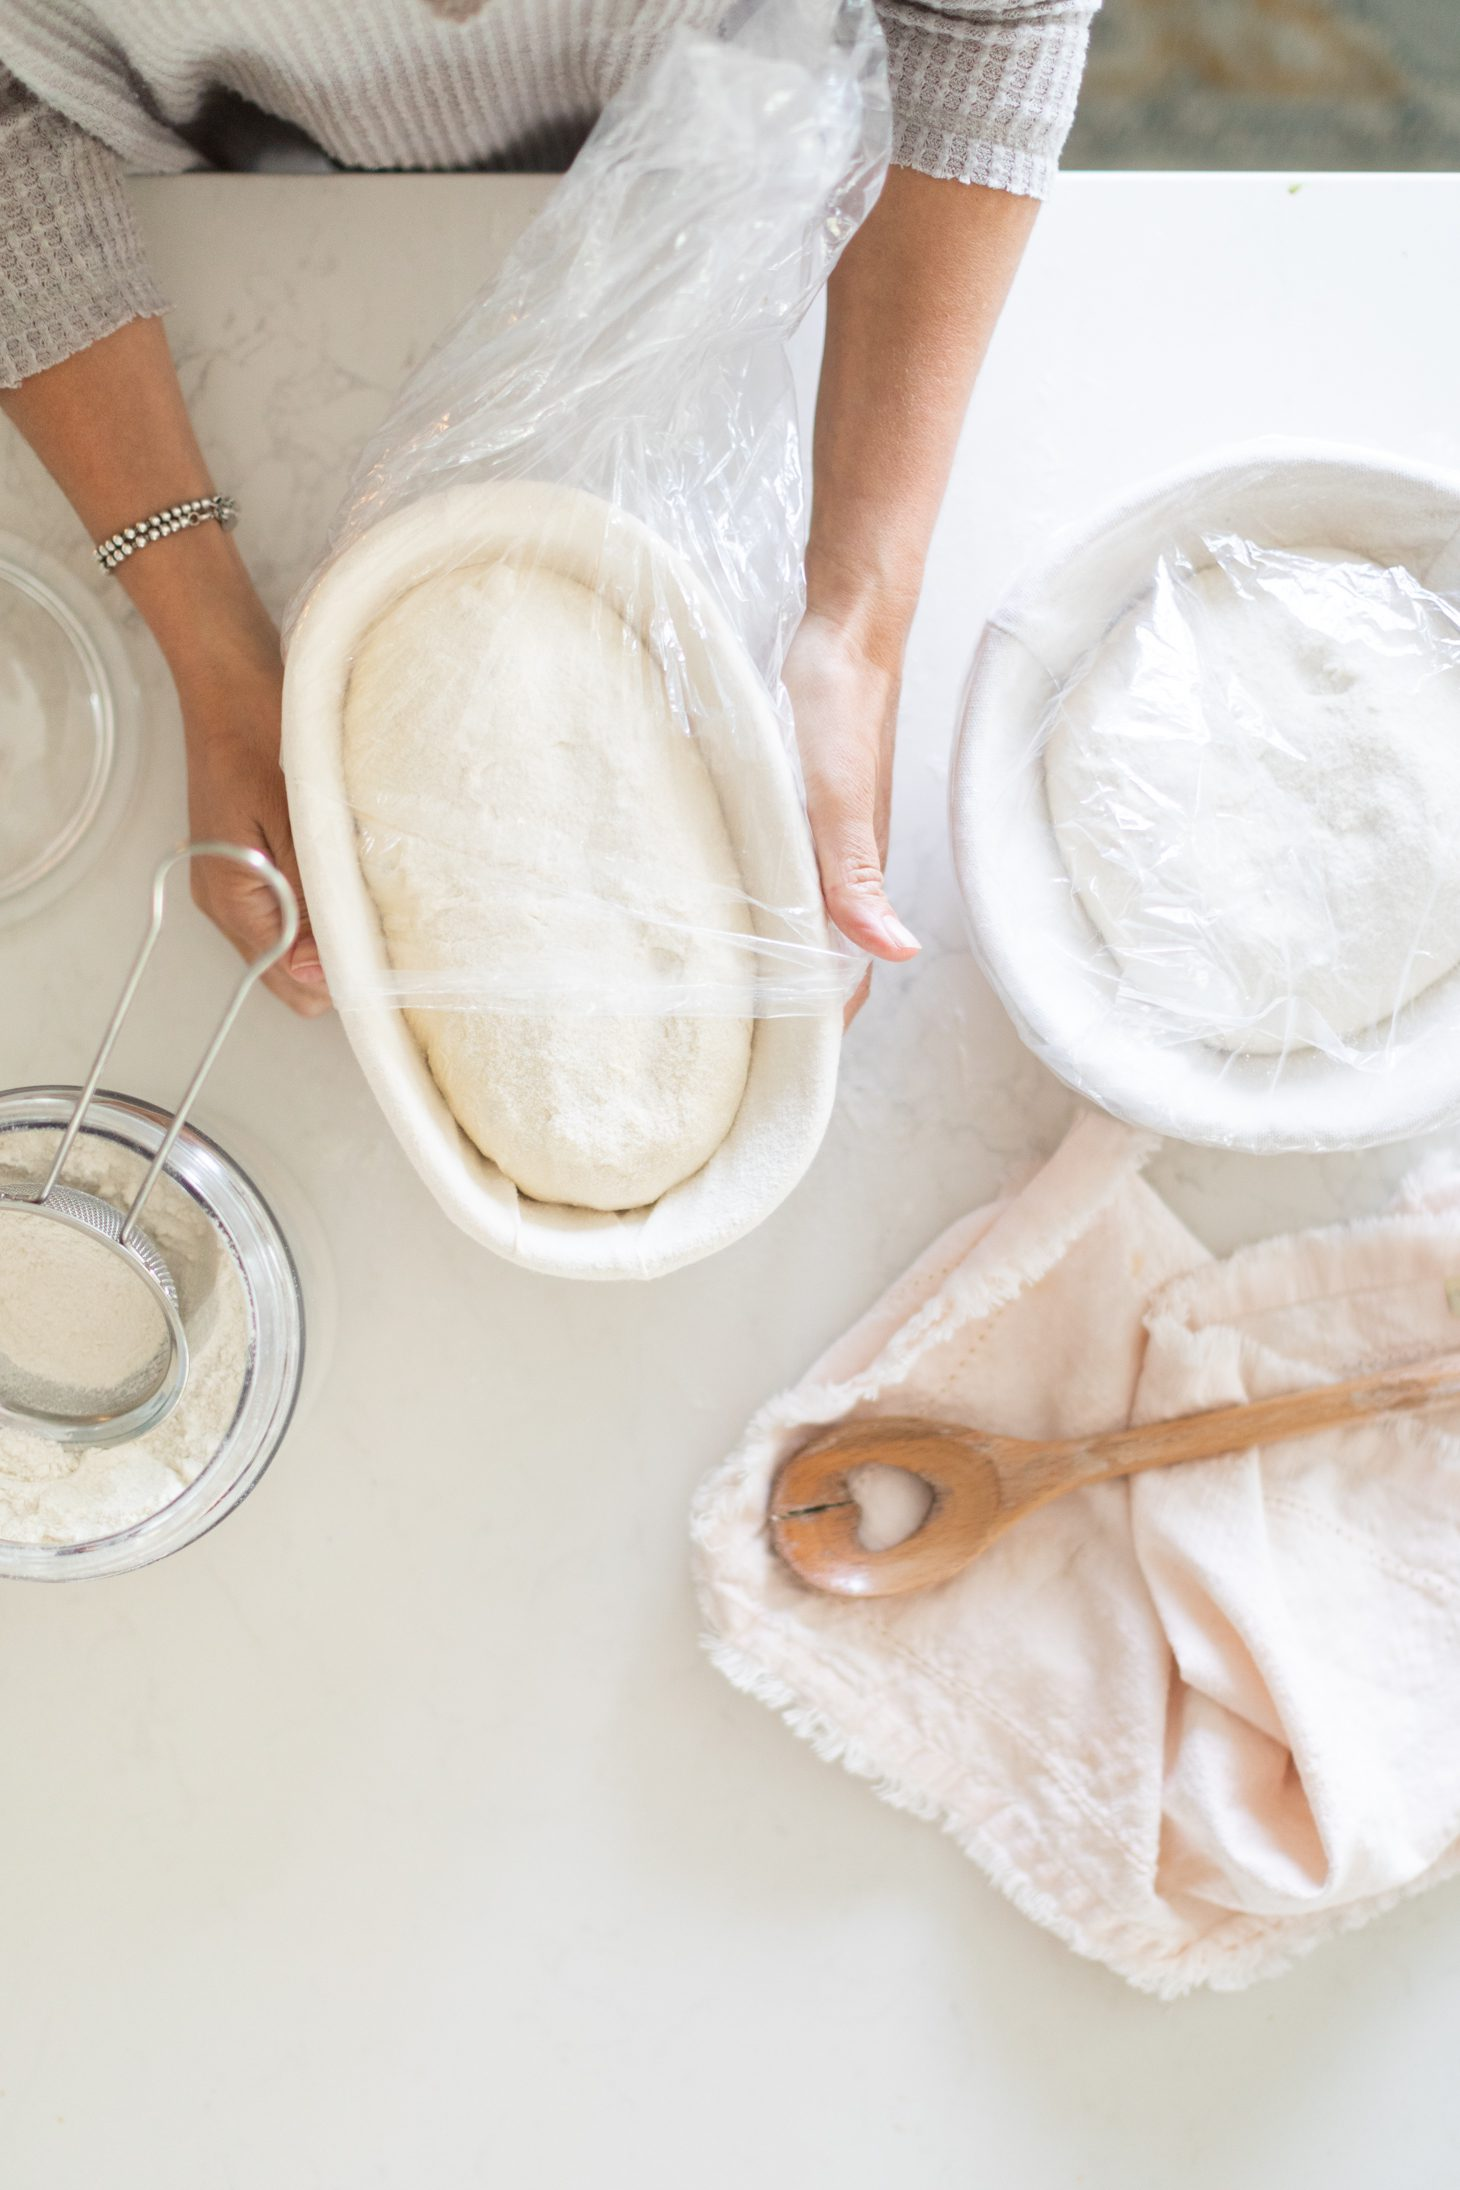 How to Proof Sourdough Bread